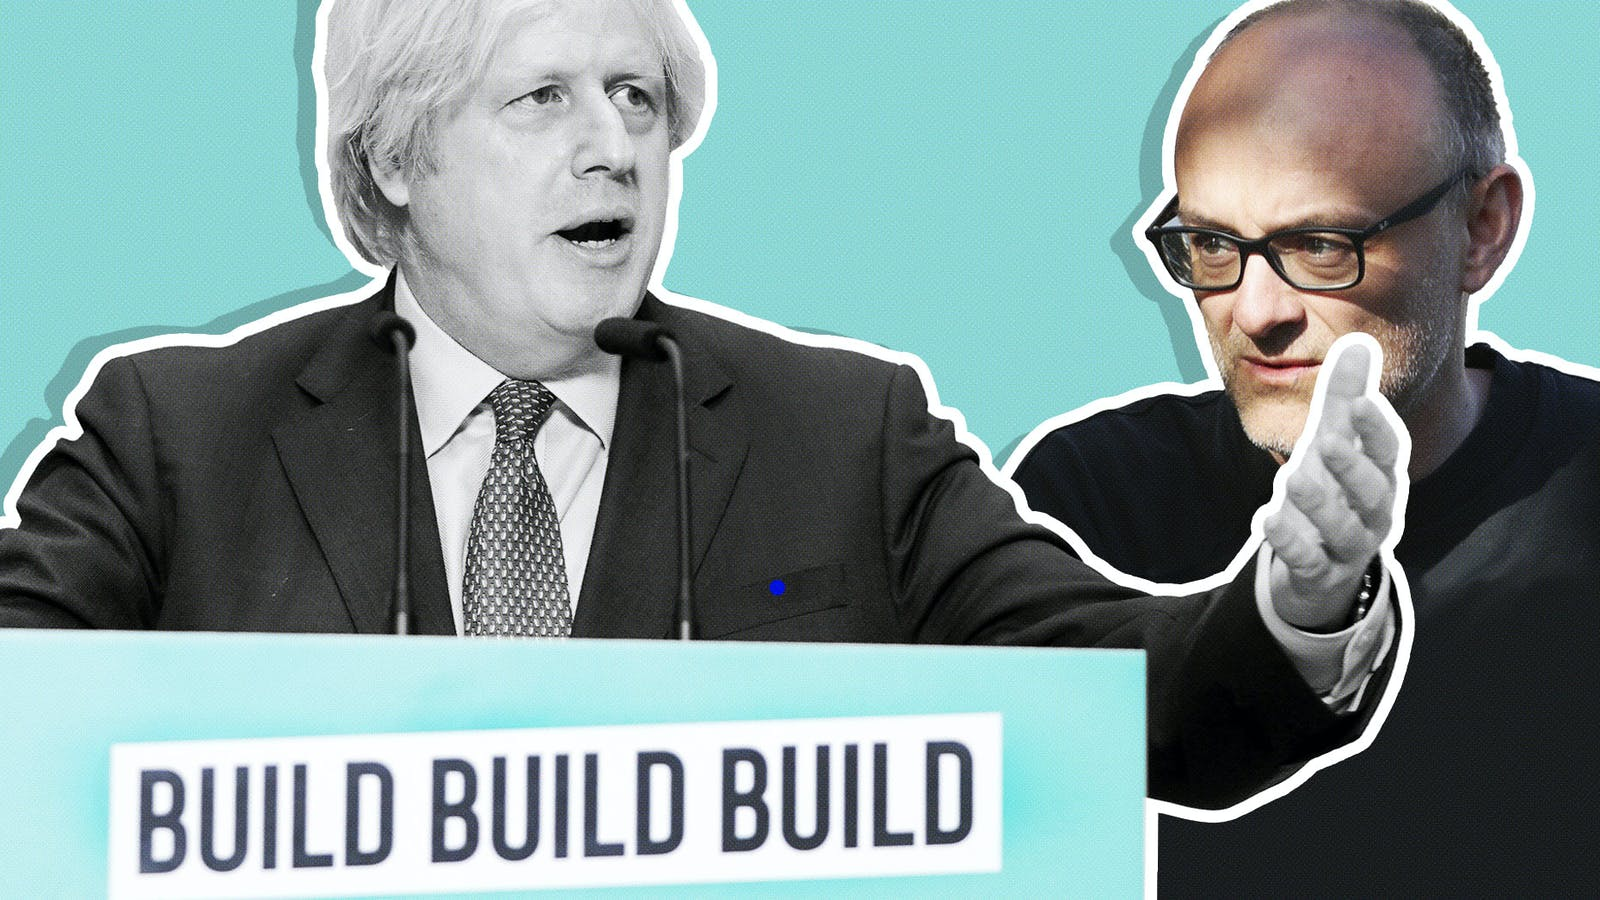 Boris Johnson (left) and Dominic Cummings. Photo of Johnson by Andrew Parsons/Flickr; photo of Cummings by Bloomberg